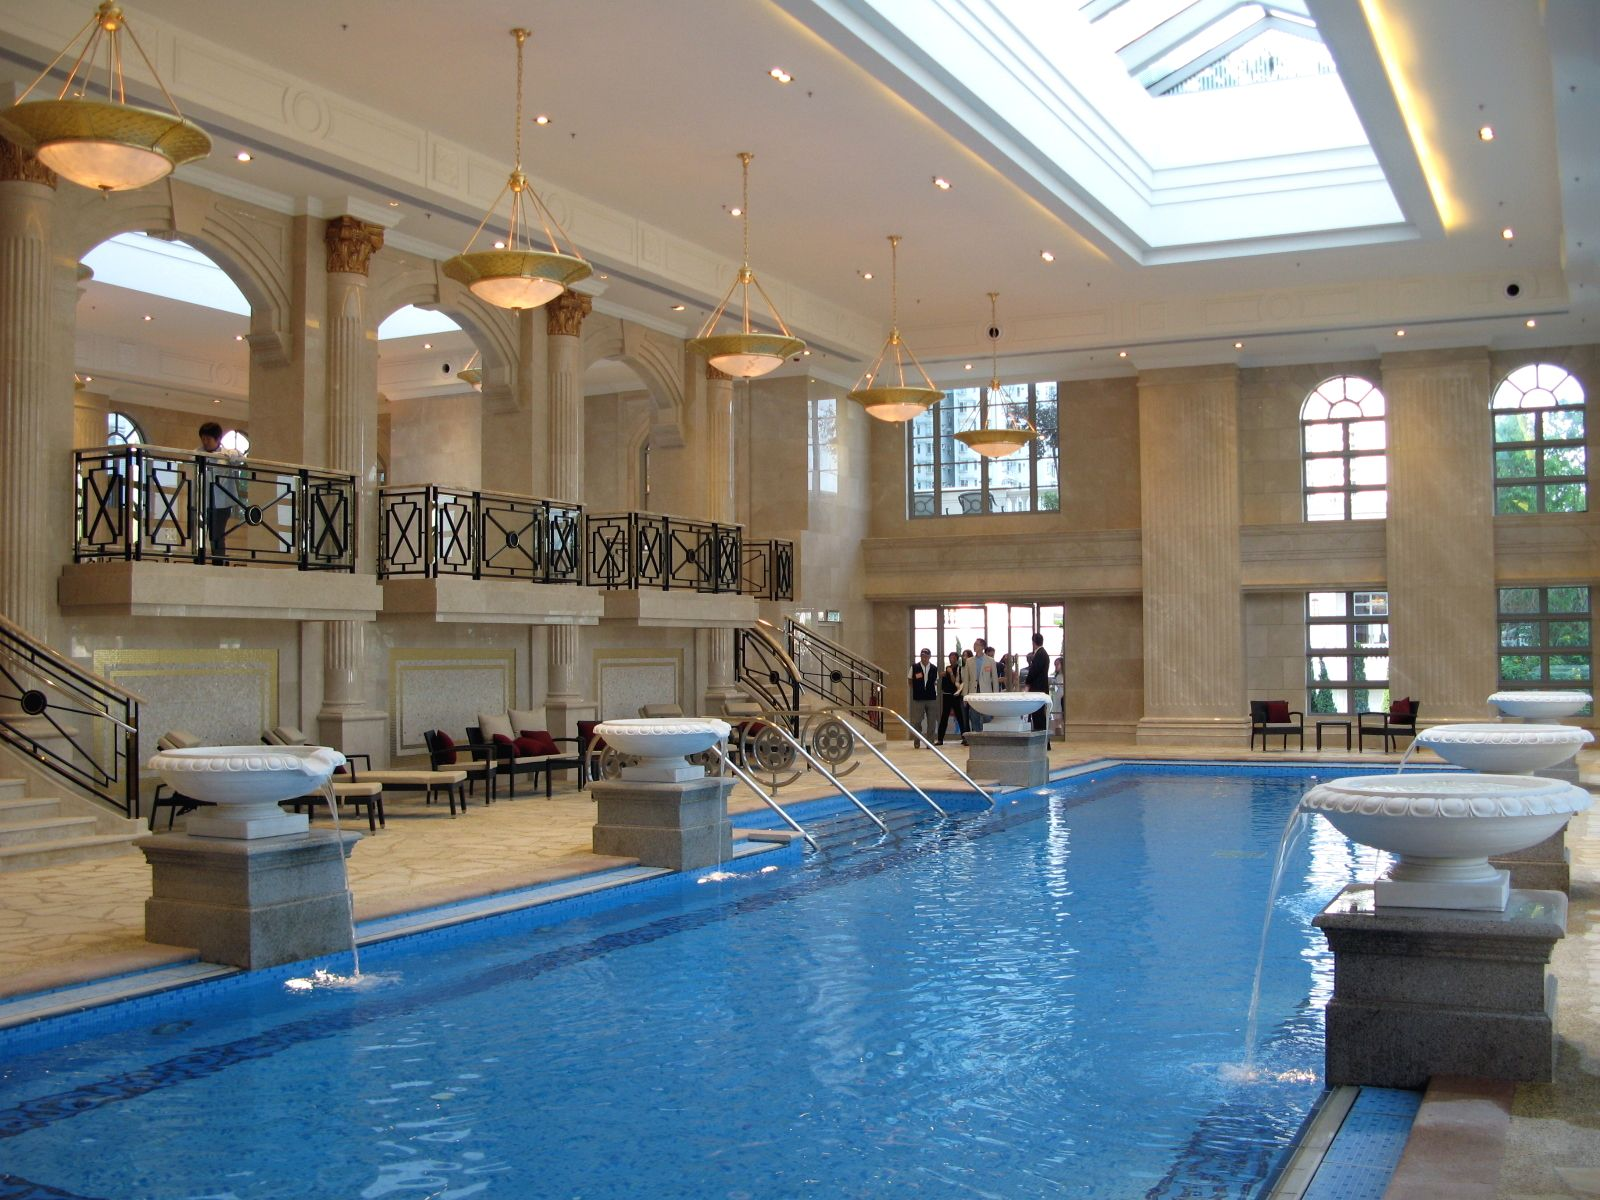 Awesome Indoor Swimming Pool pleted With Modern Lights And